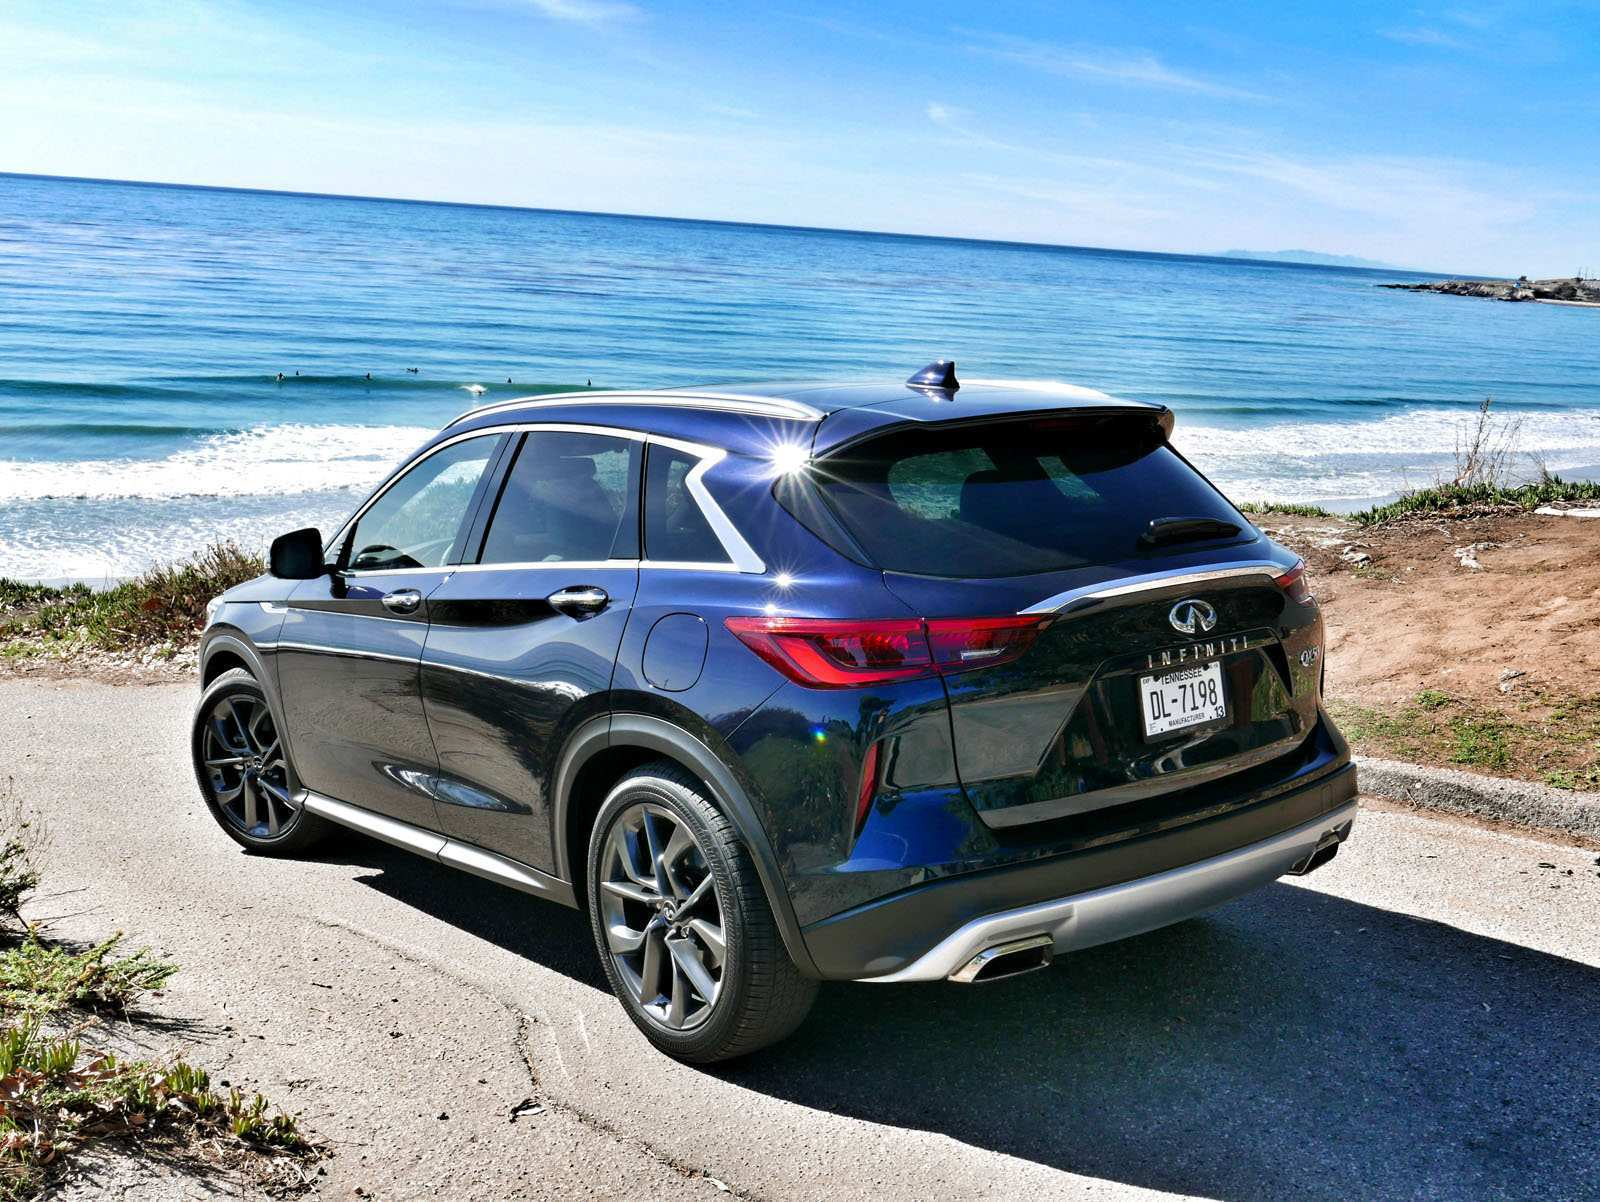 54 Concept of 2019 Infiniti Qx50 Review Price for 2019 Infiniti Qx50 Review